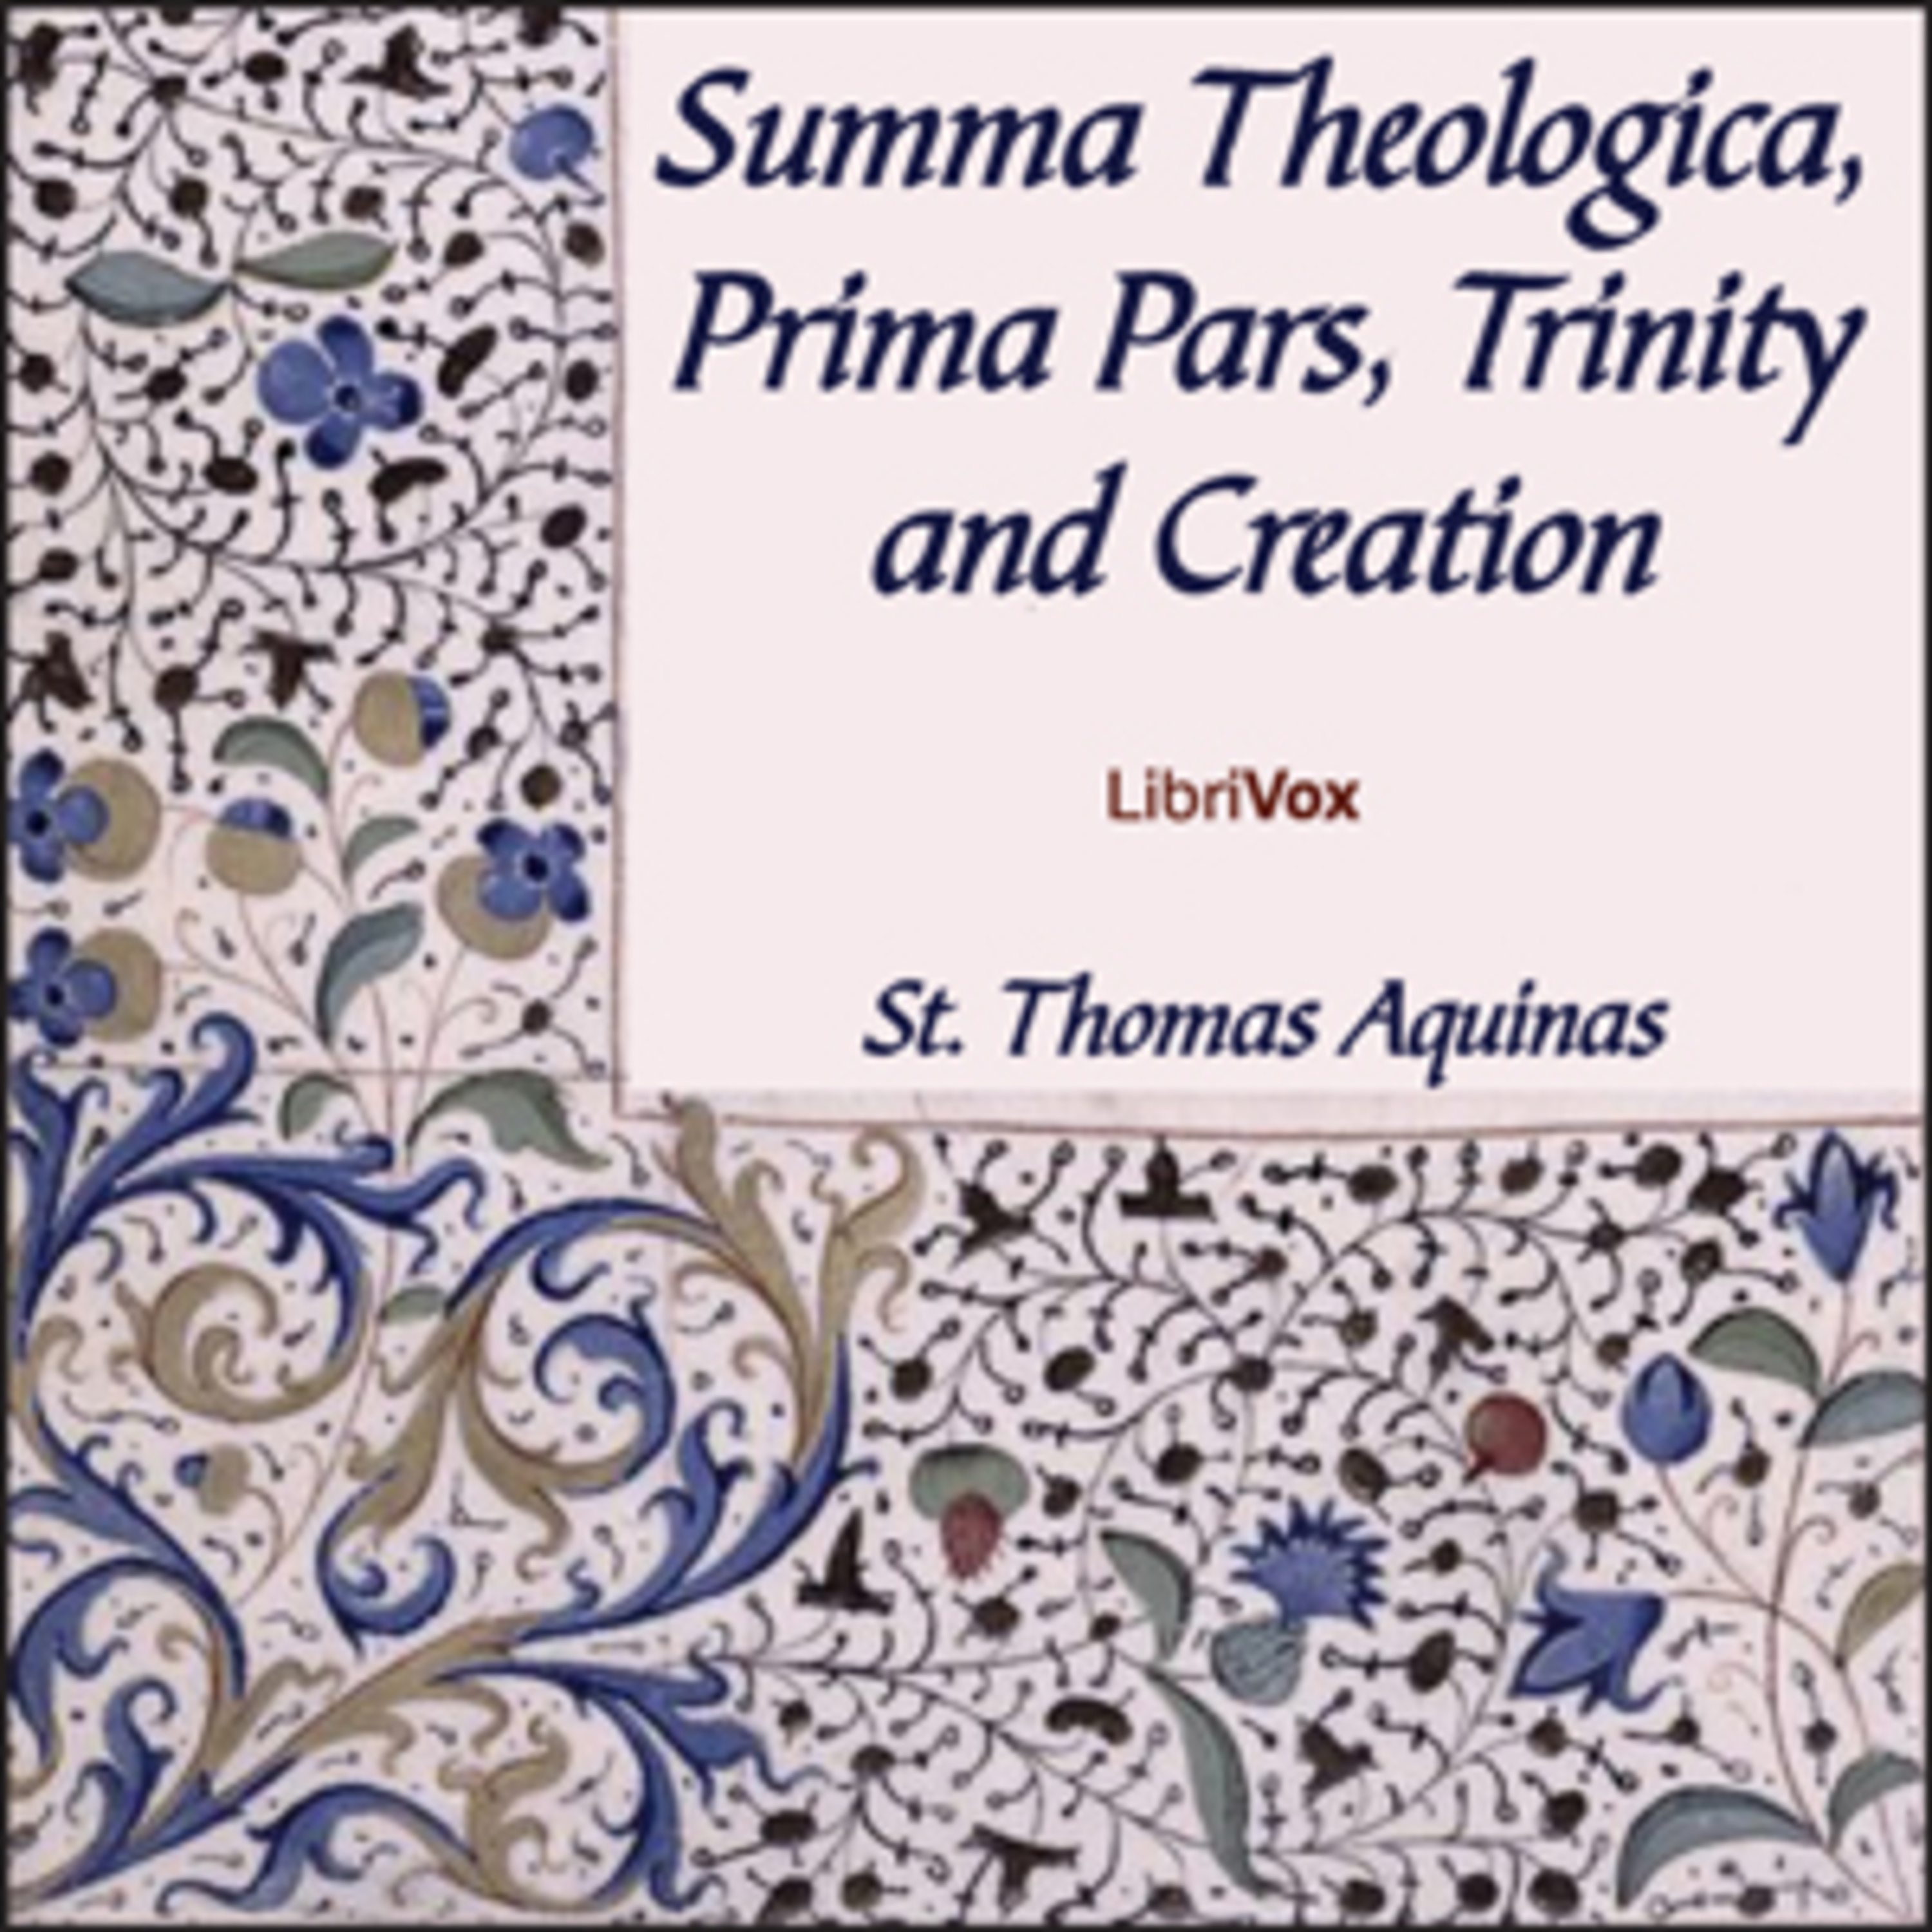 My Daily Aquinas Podcast - Summa Theologica - Pars Prima - Initial Questions - Procession of Divine Persons - Divine Revelations